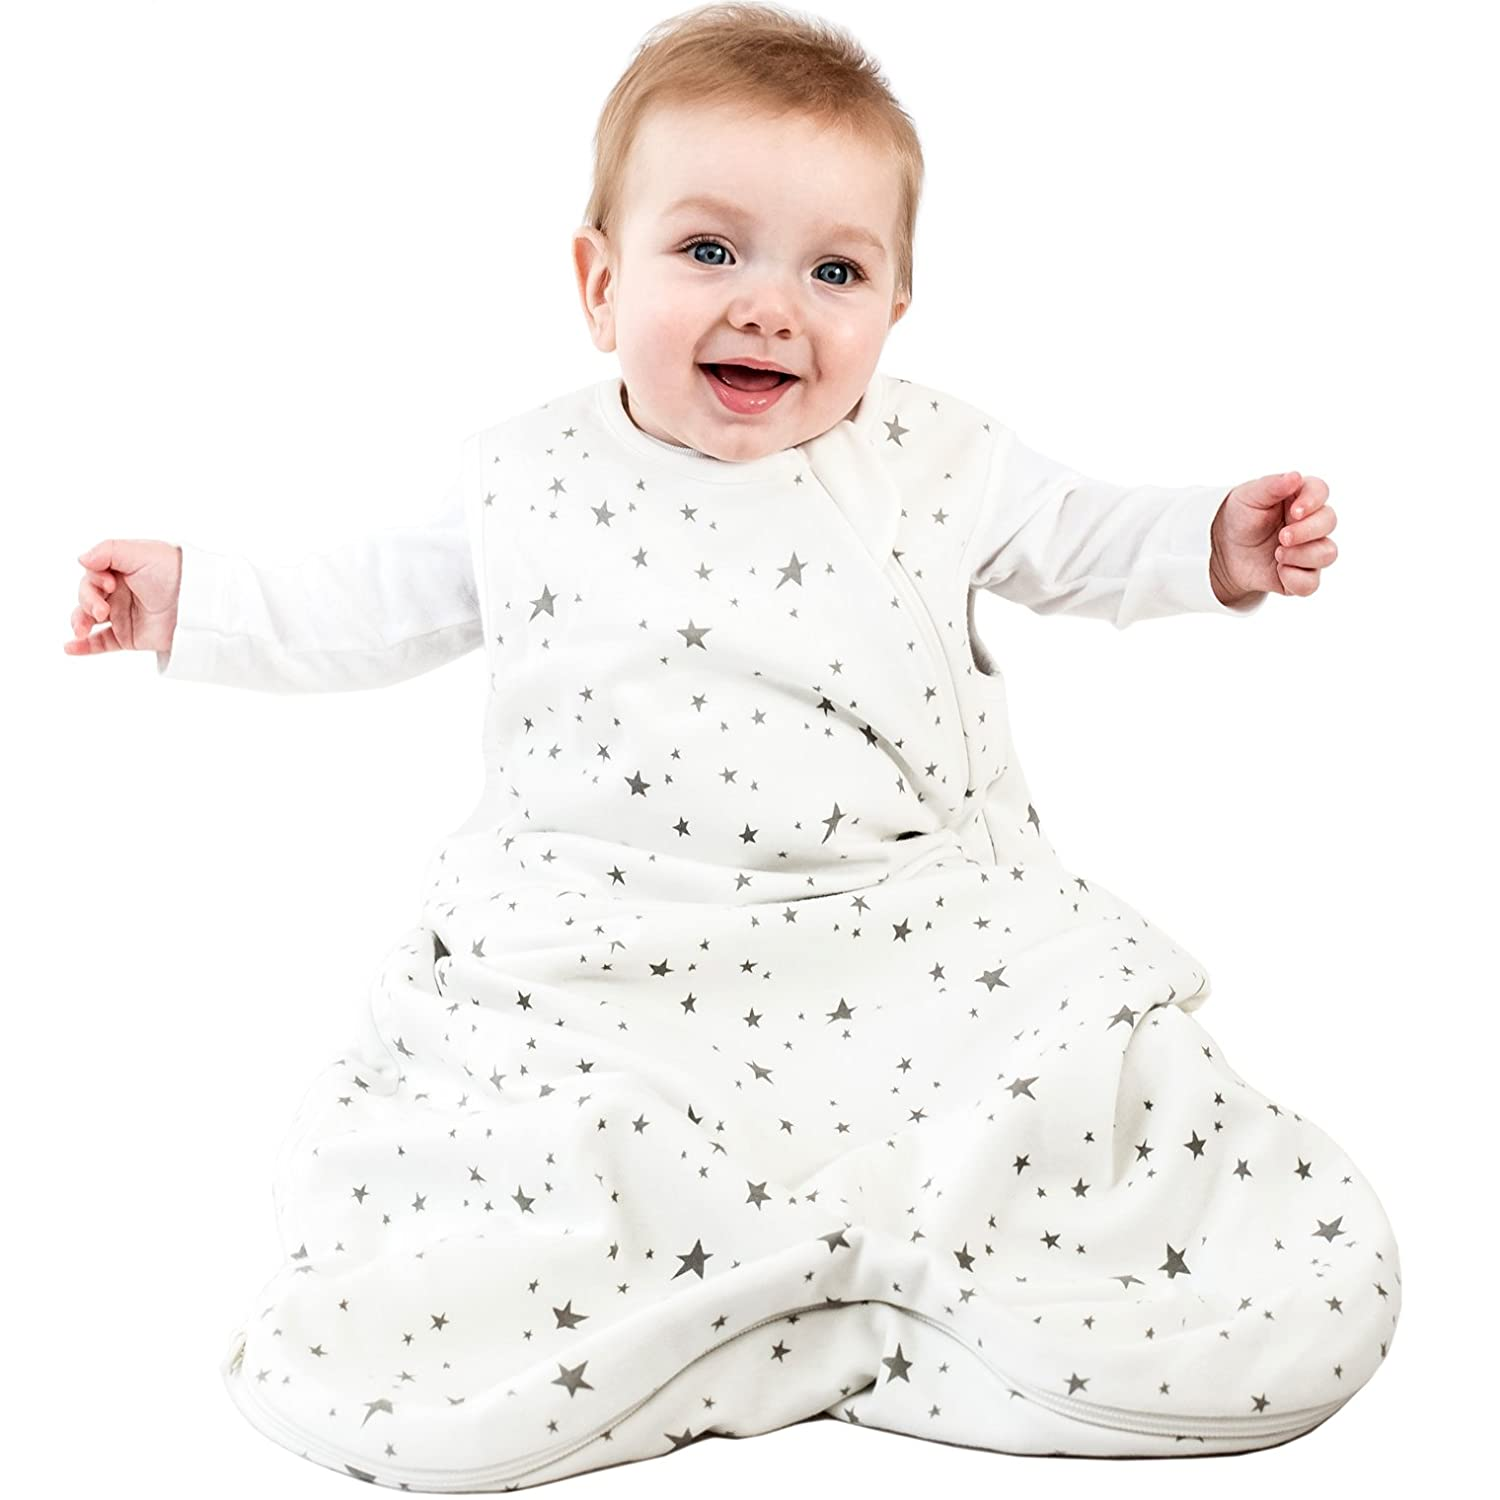 Woolino 4 Season Basic Baby Sleeping Bag, 0-6 Mo, Stars